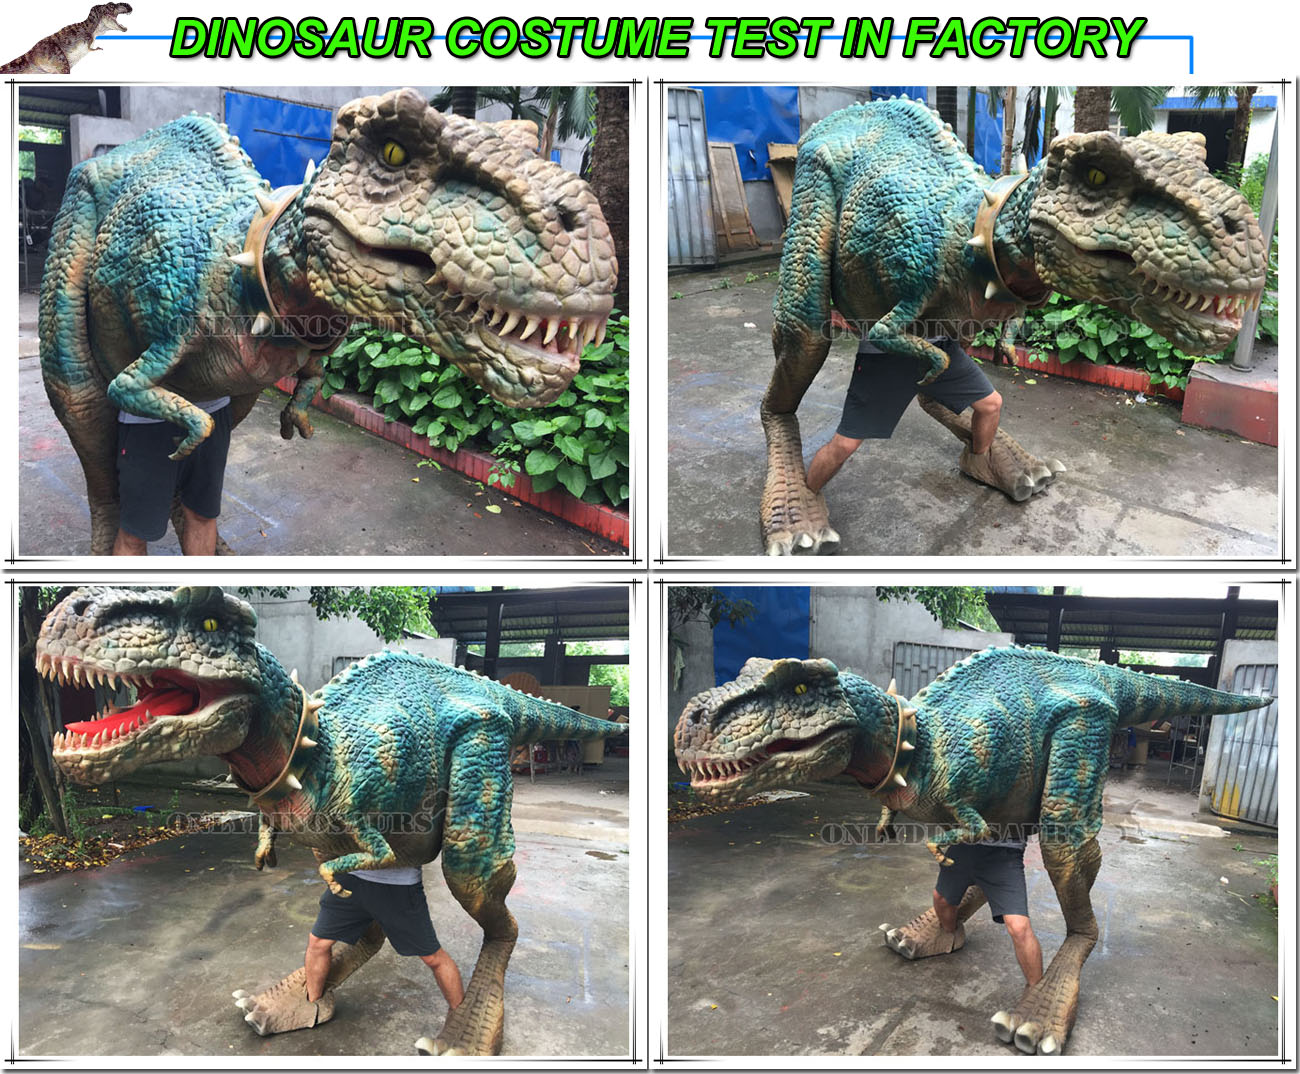 T-Rex Costume Test in Factory